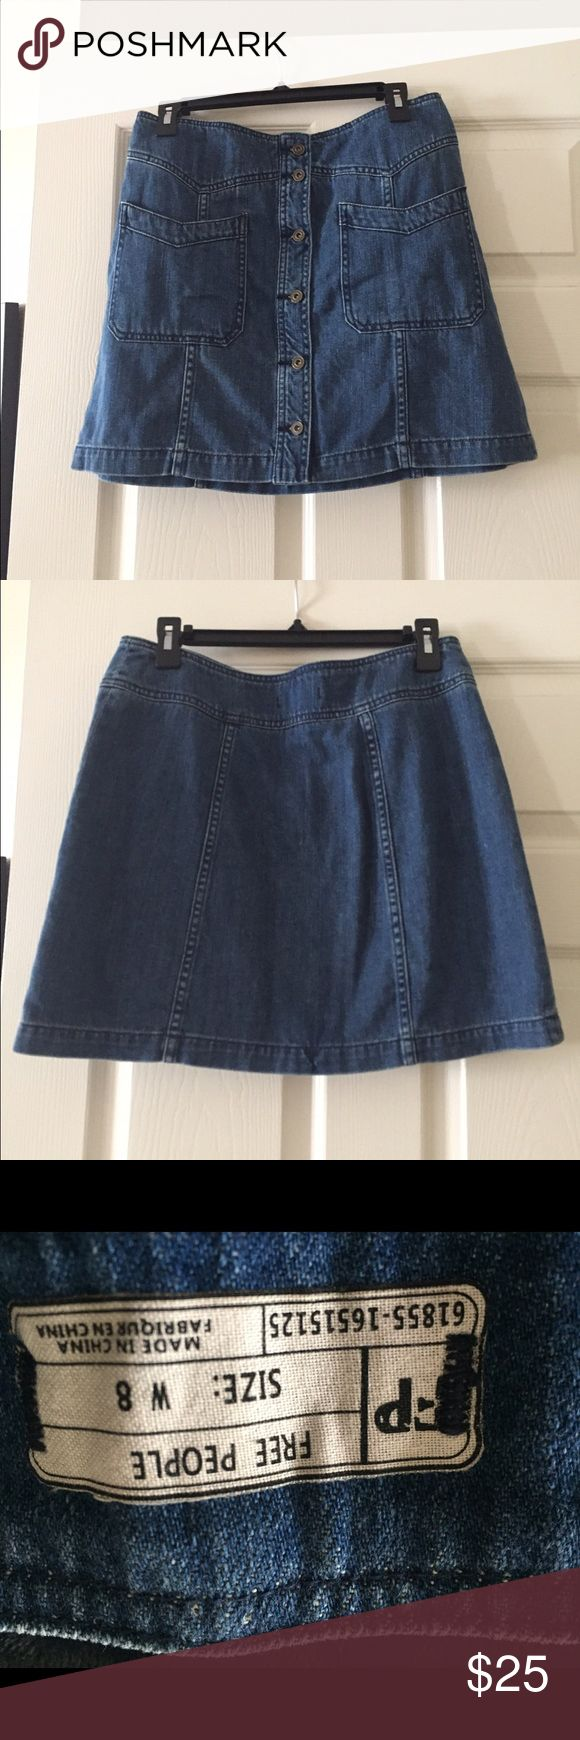 """Medium wash jean mini skirt!!❤️👗 New w/o tags Free People medium wash denim mini skirt w/ button front and two pockets on front ! 16.5"""" from waist to hem! 🎉❤️😄😍 Free People Skirts Mini"""